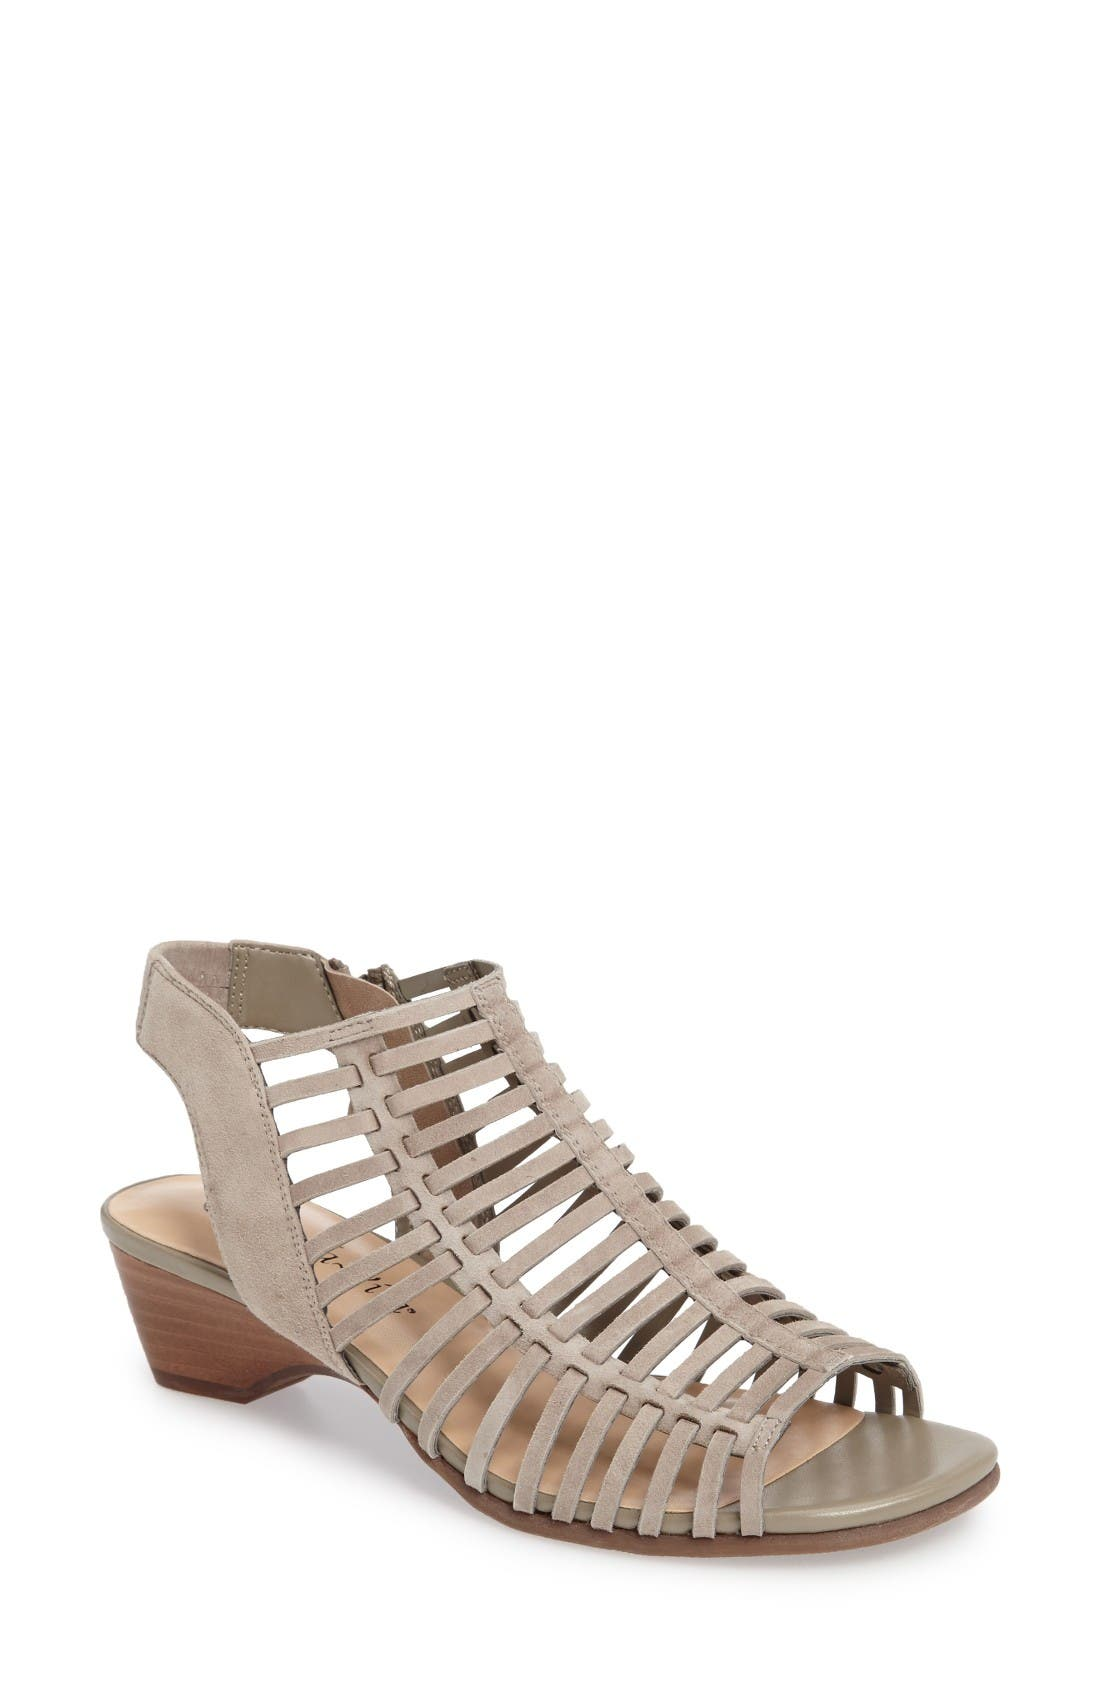 Alternate Image 1 Selected - Bella Vita Pacey Cage Sandal (Women)